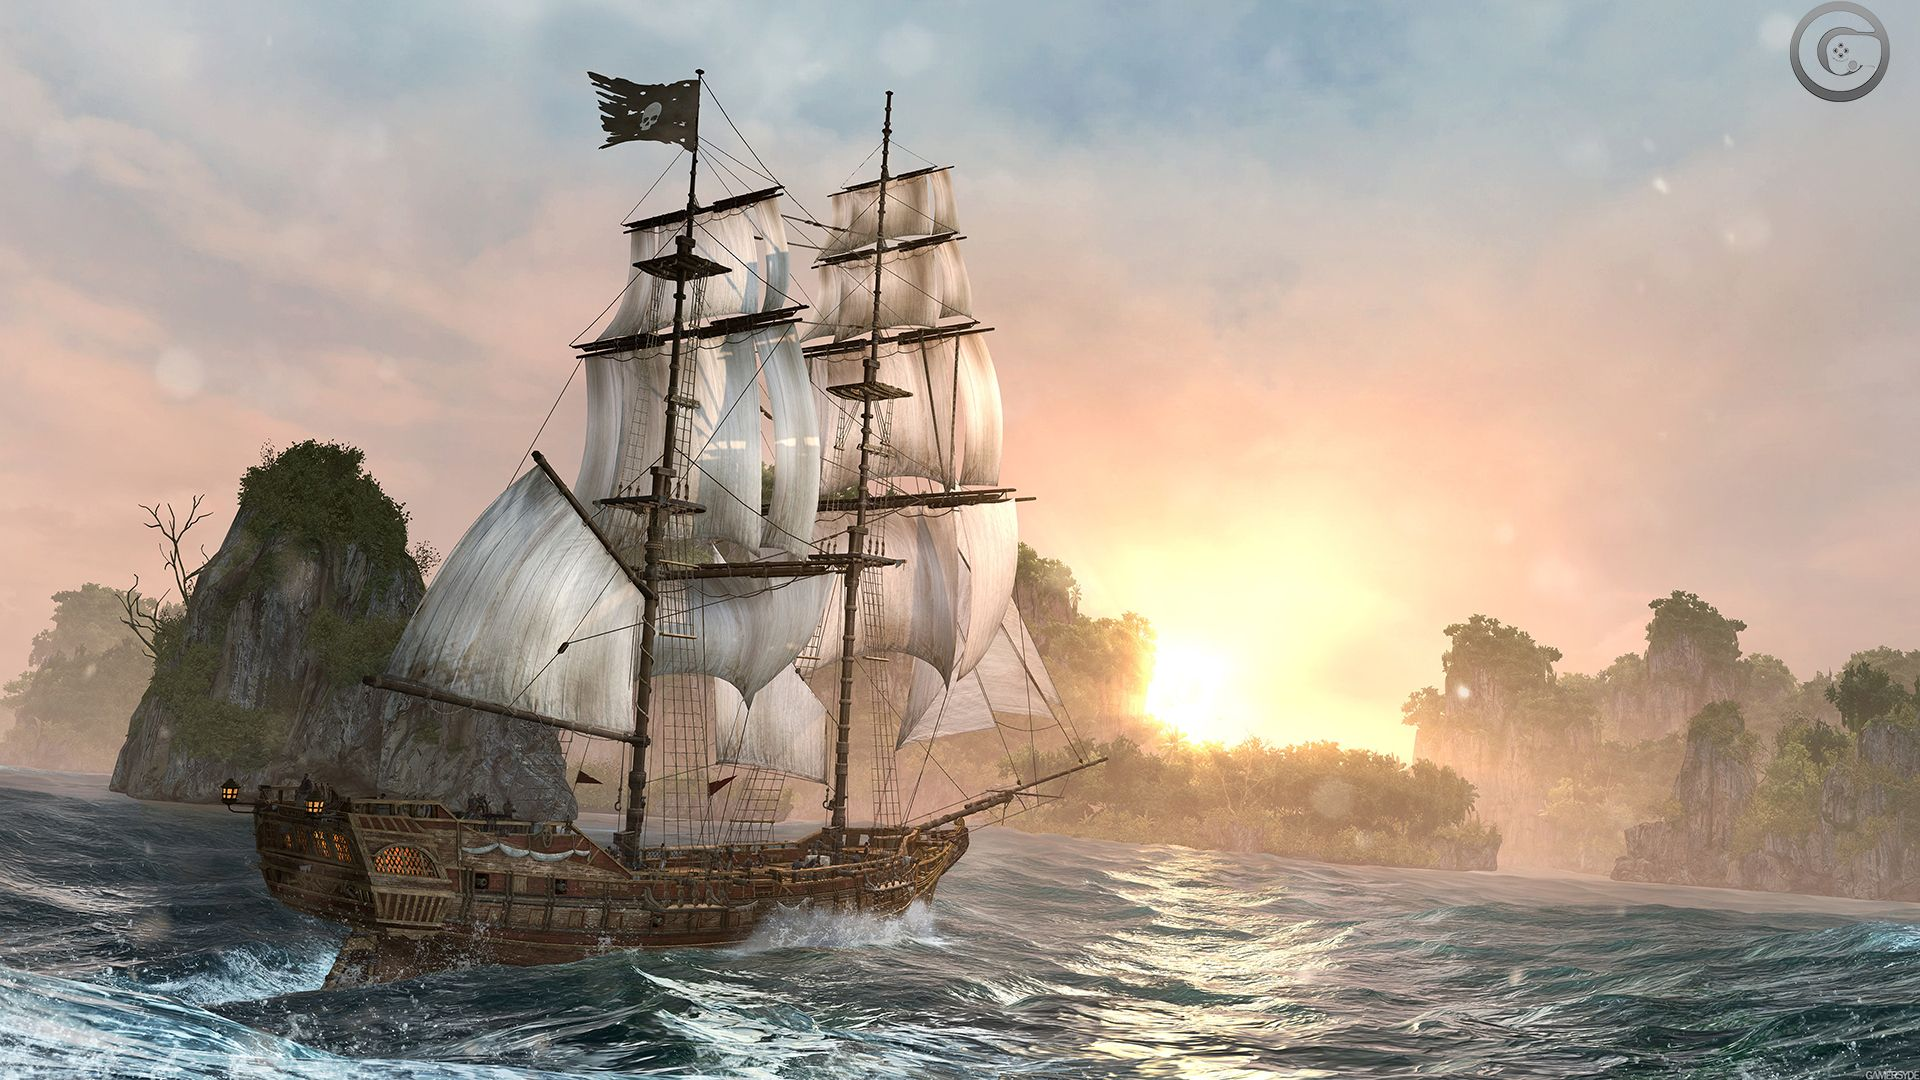 Assassin S Creed Iv Black Flag Hd Wallpapers Assassin S Creed Wallpaper Background Images Assassins Creed Black Flag